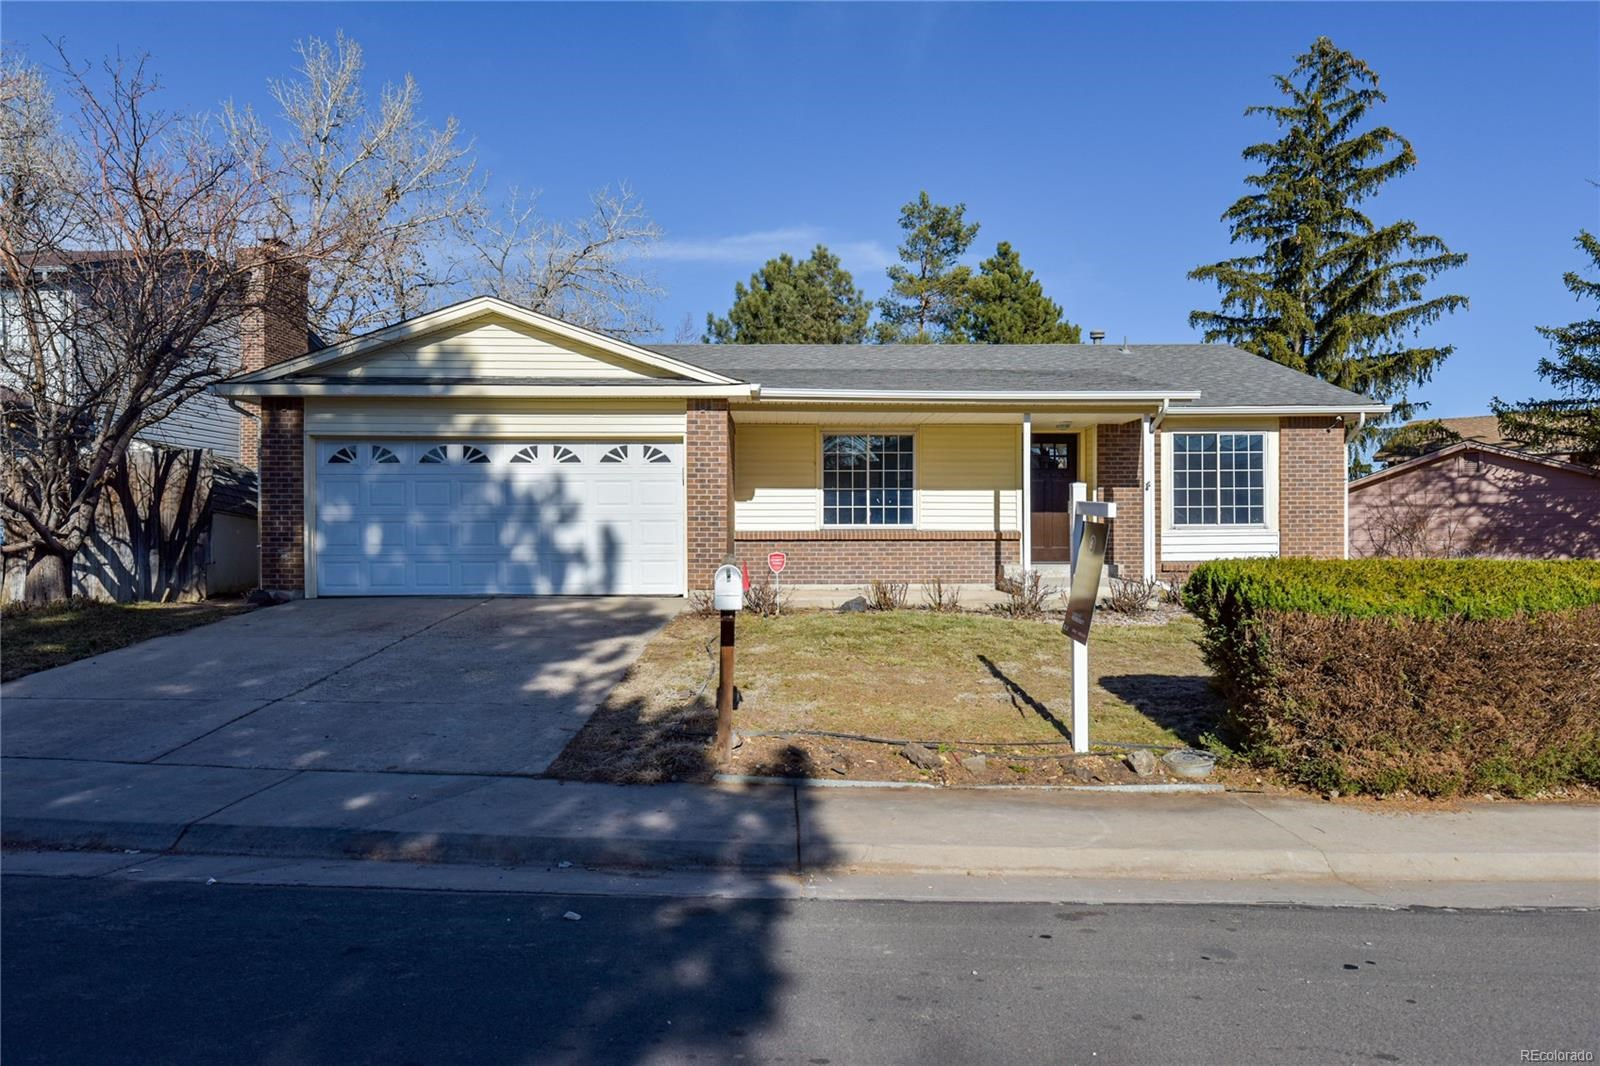 MLS# 8183776 - 1 - 2547 W 104th Circle, Westminster, CO 80234